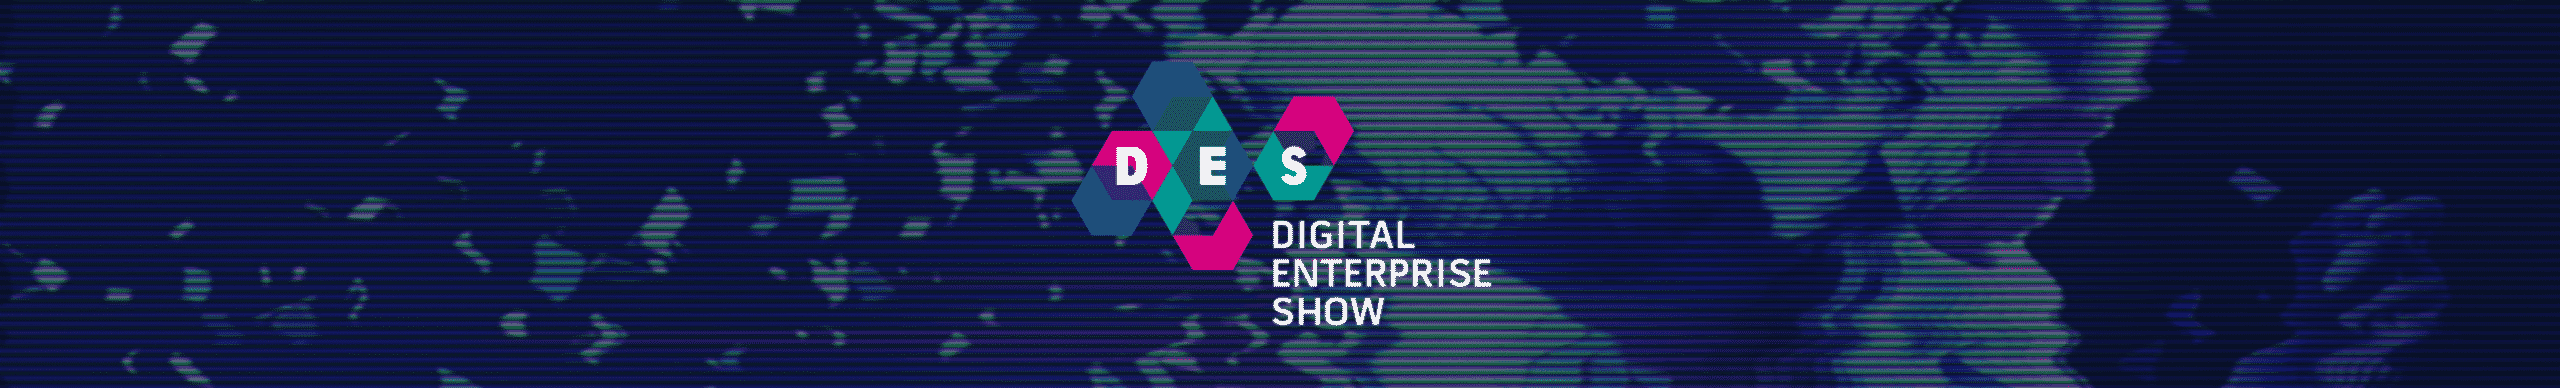 SISQUAL marca presença no Digital Enterprise Show em Madrid